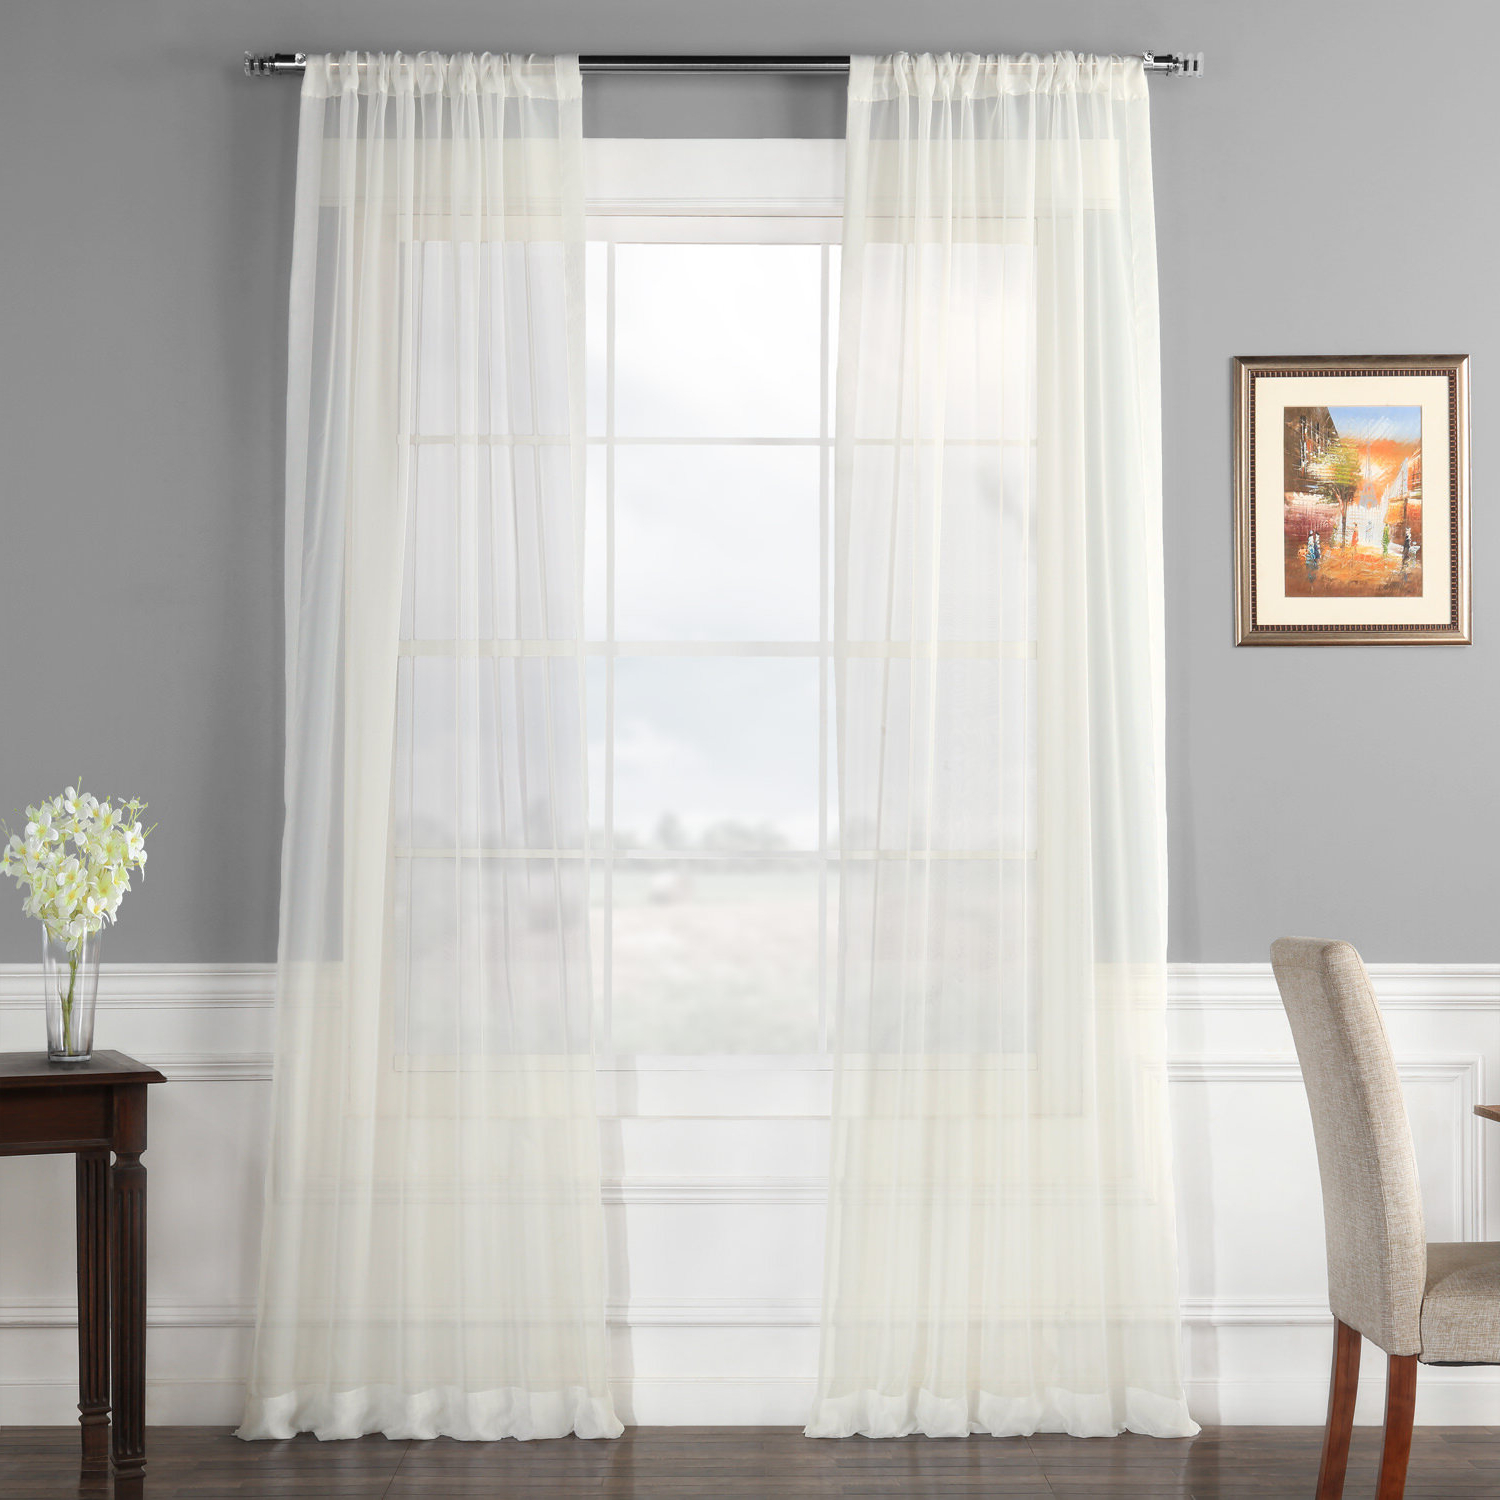 Well Liked Emie Solid Sheer Rod Pocket Curtain Panels Regarding Rod Pocket Curtain Panels (View 6 of 20)